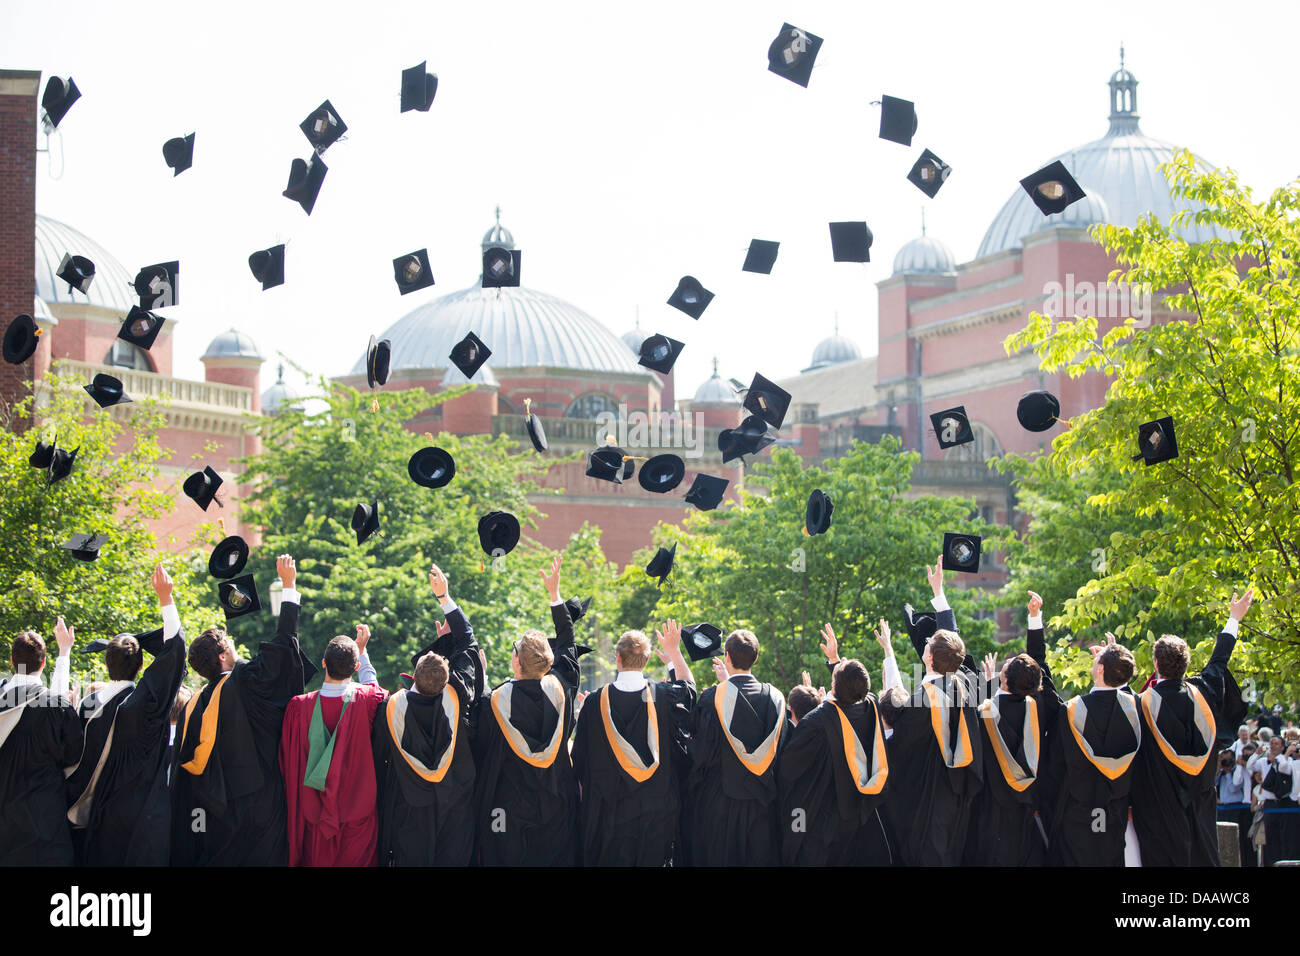 Graduates throw their caps in the air at Birmingham University, UK, after the graduation ceremony. - Stock Image